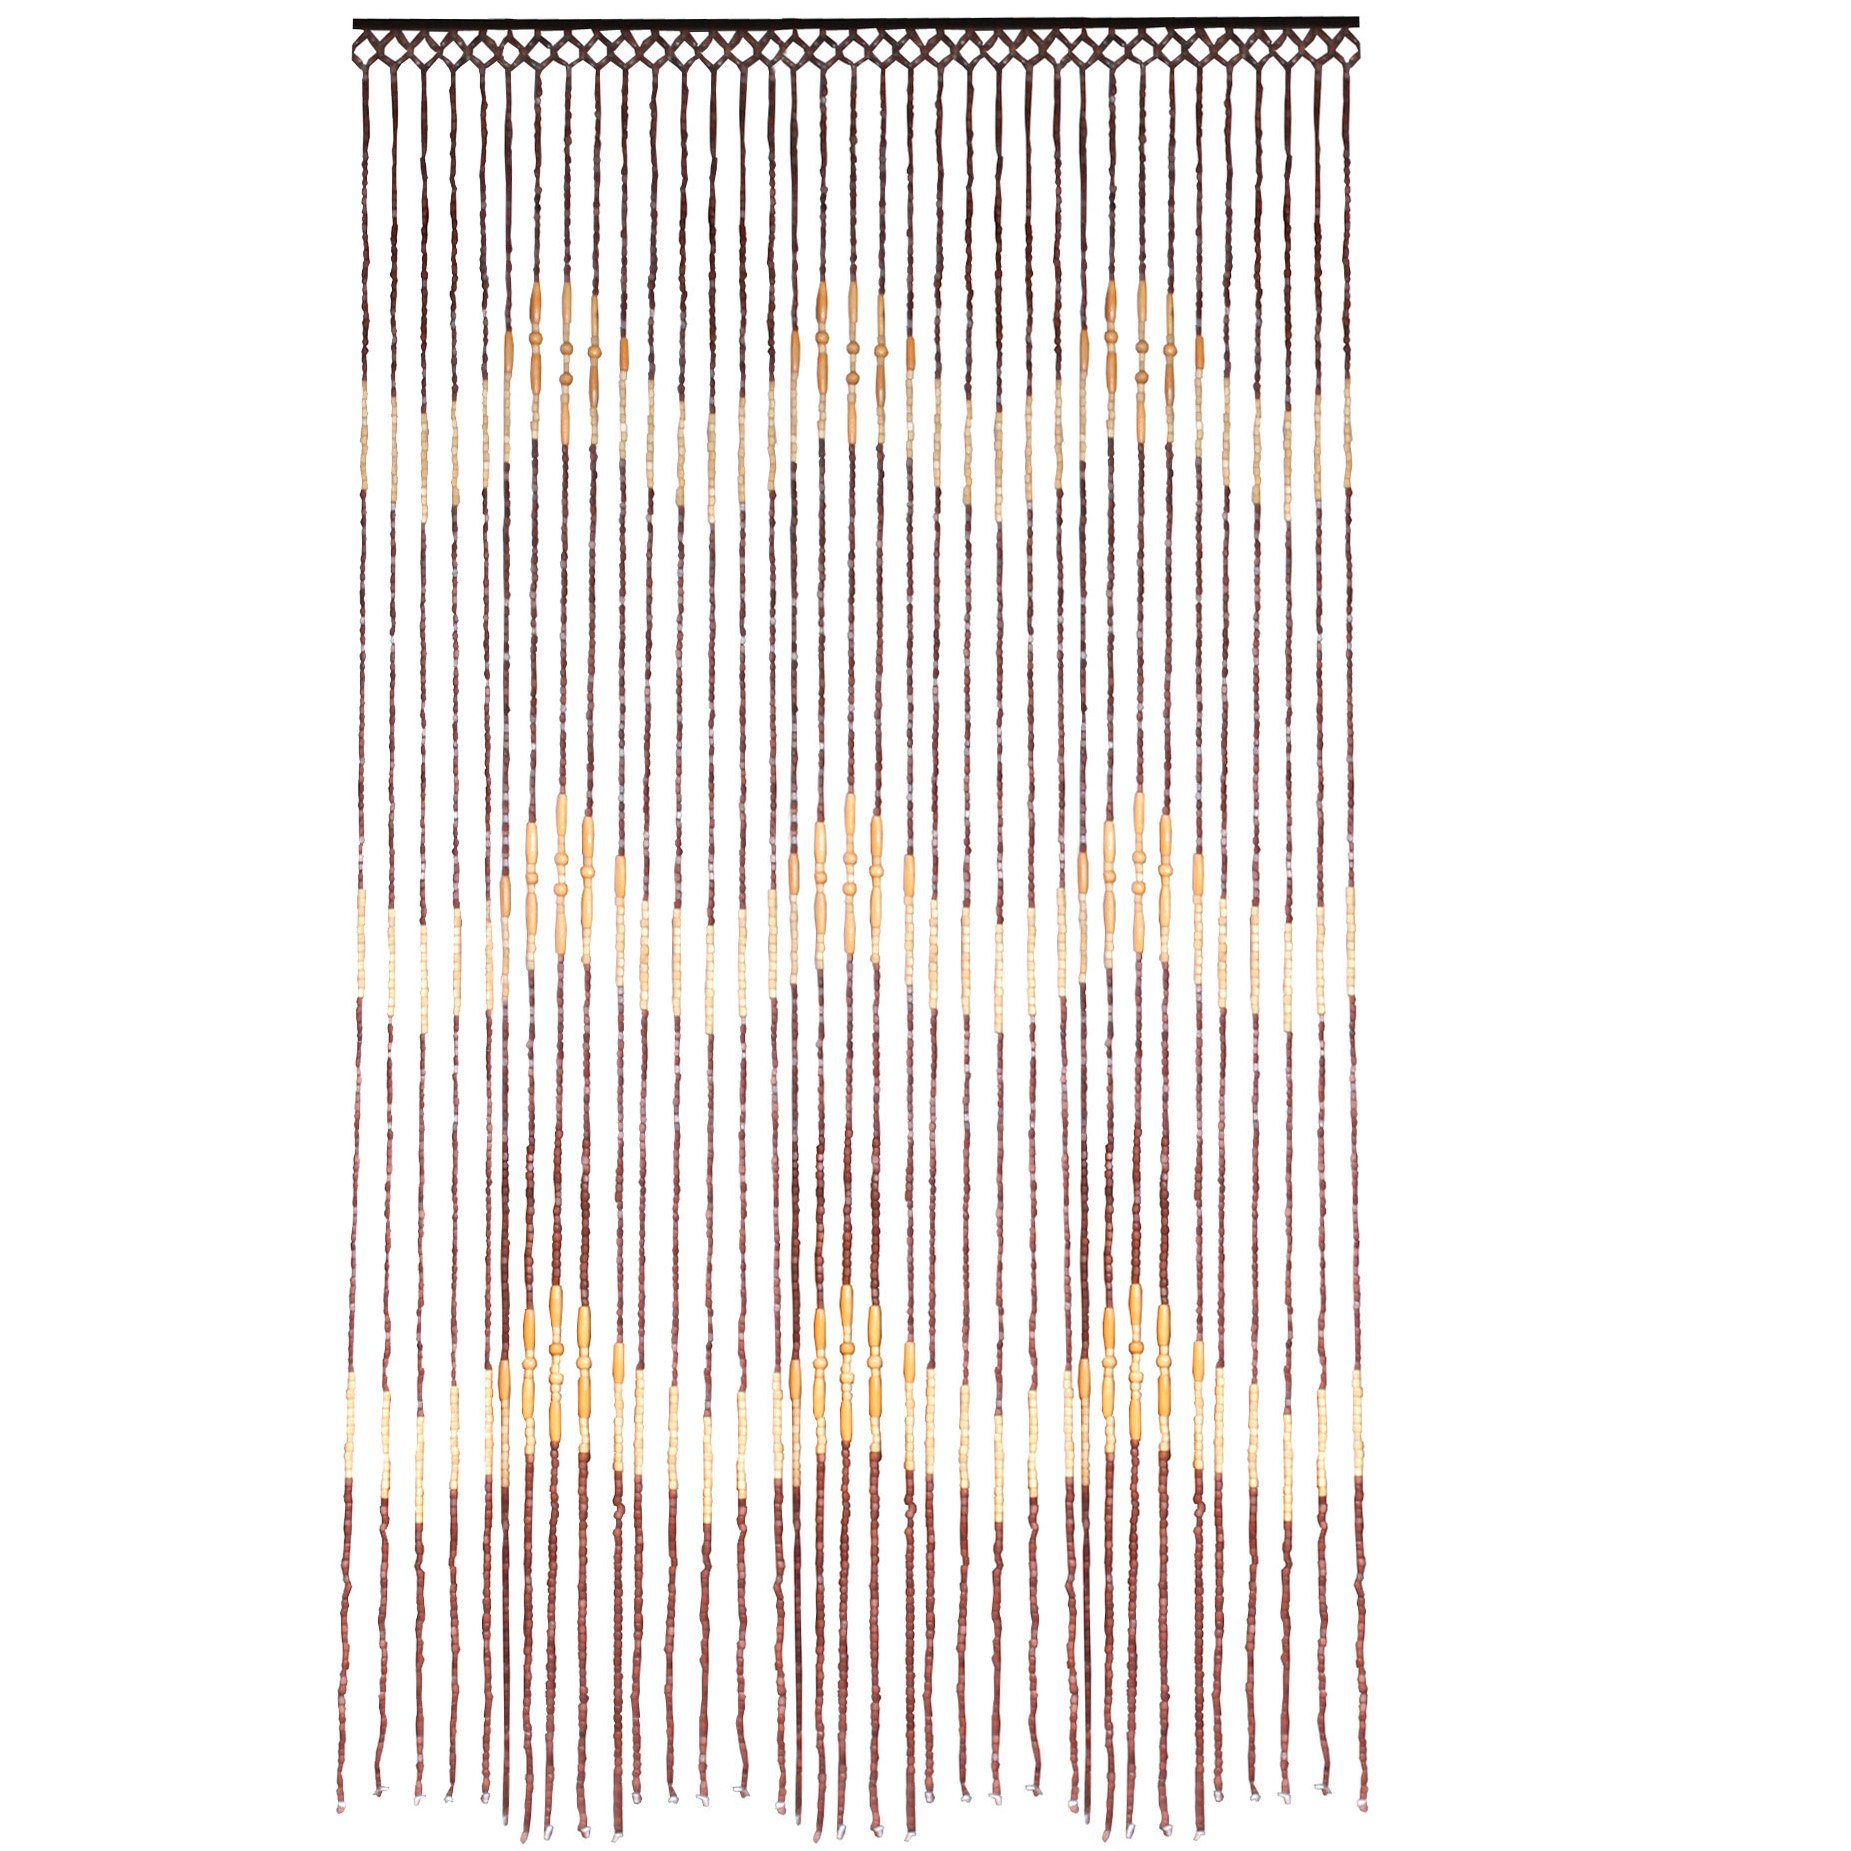 Jvl Tuscany Hanging Wooden Beaded Door Curtain Screen Waves 90 X 180 Cm Ebay